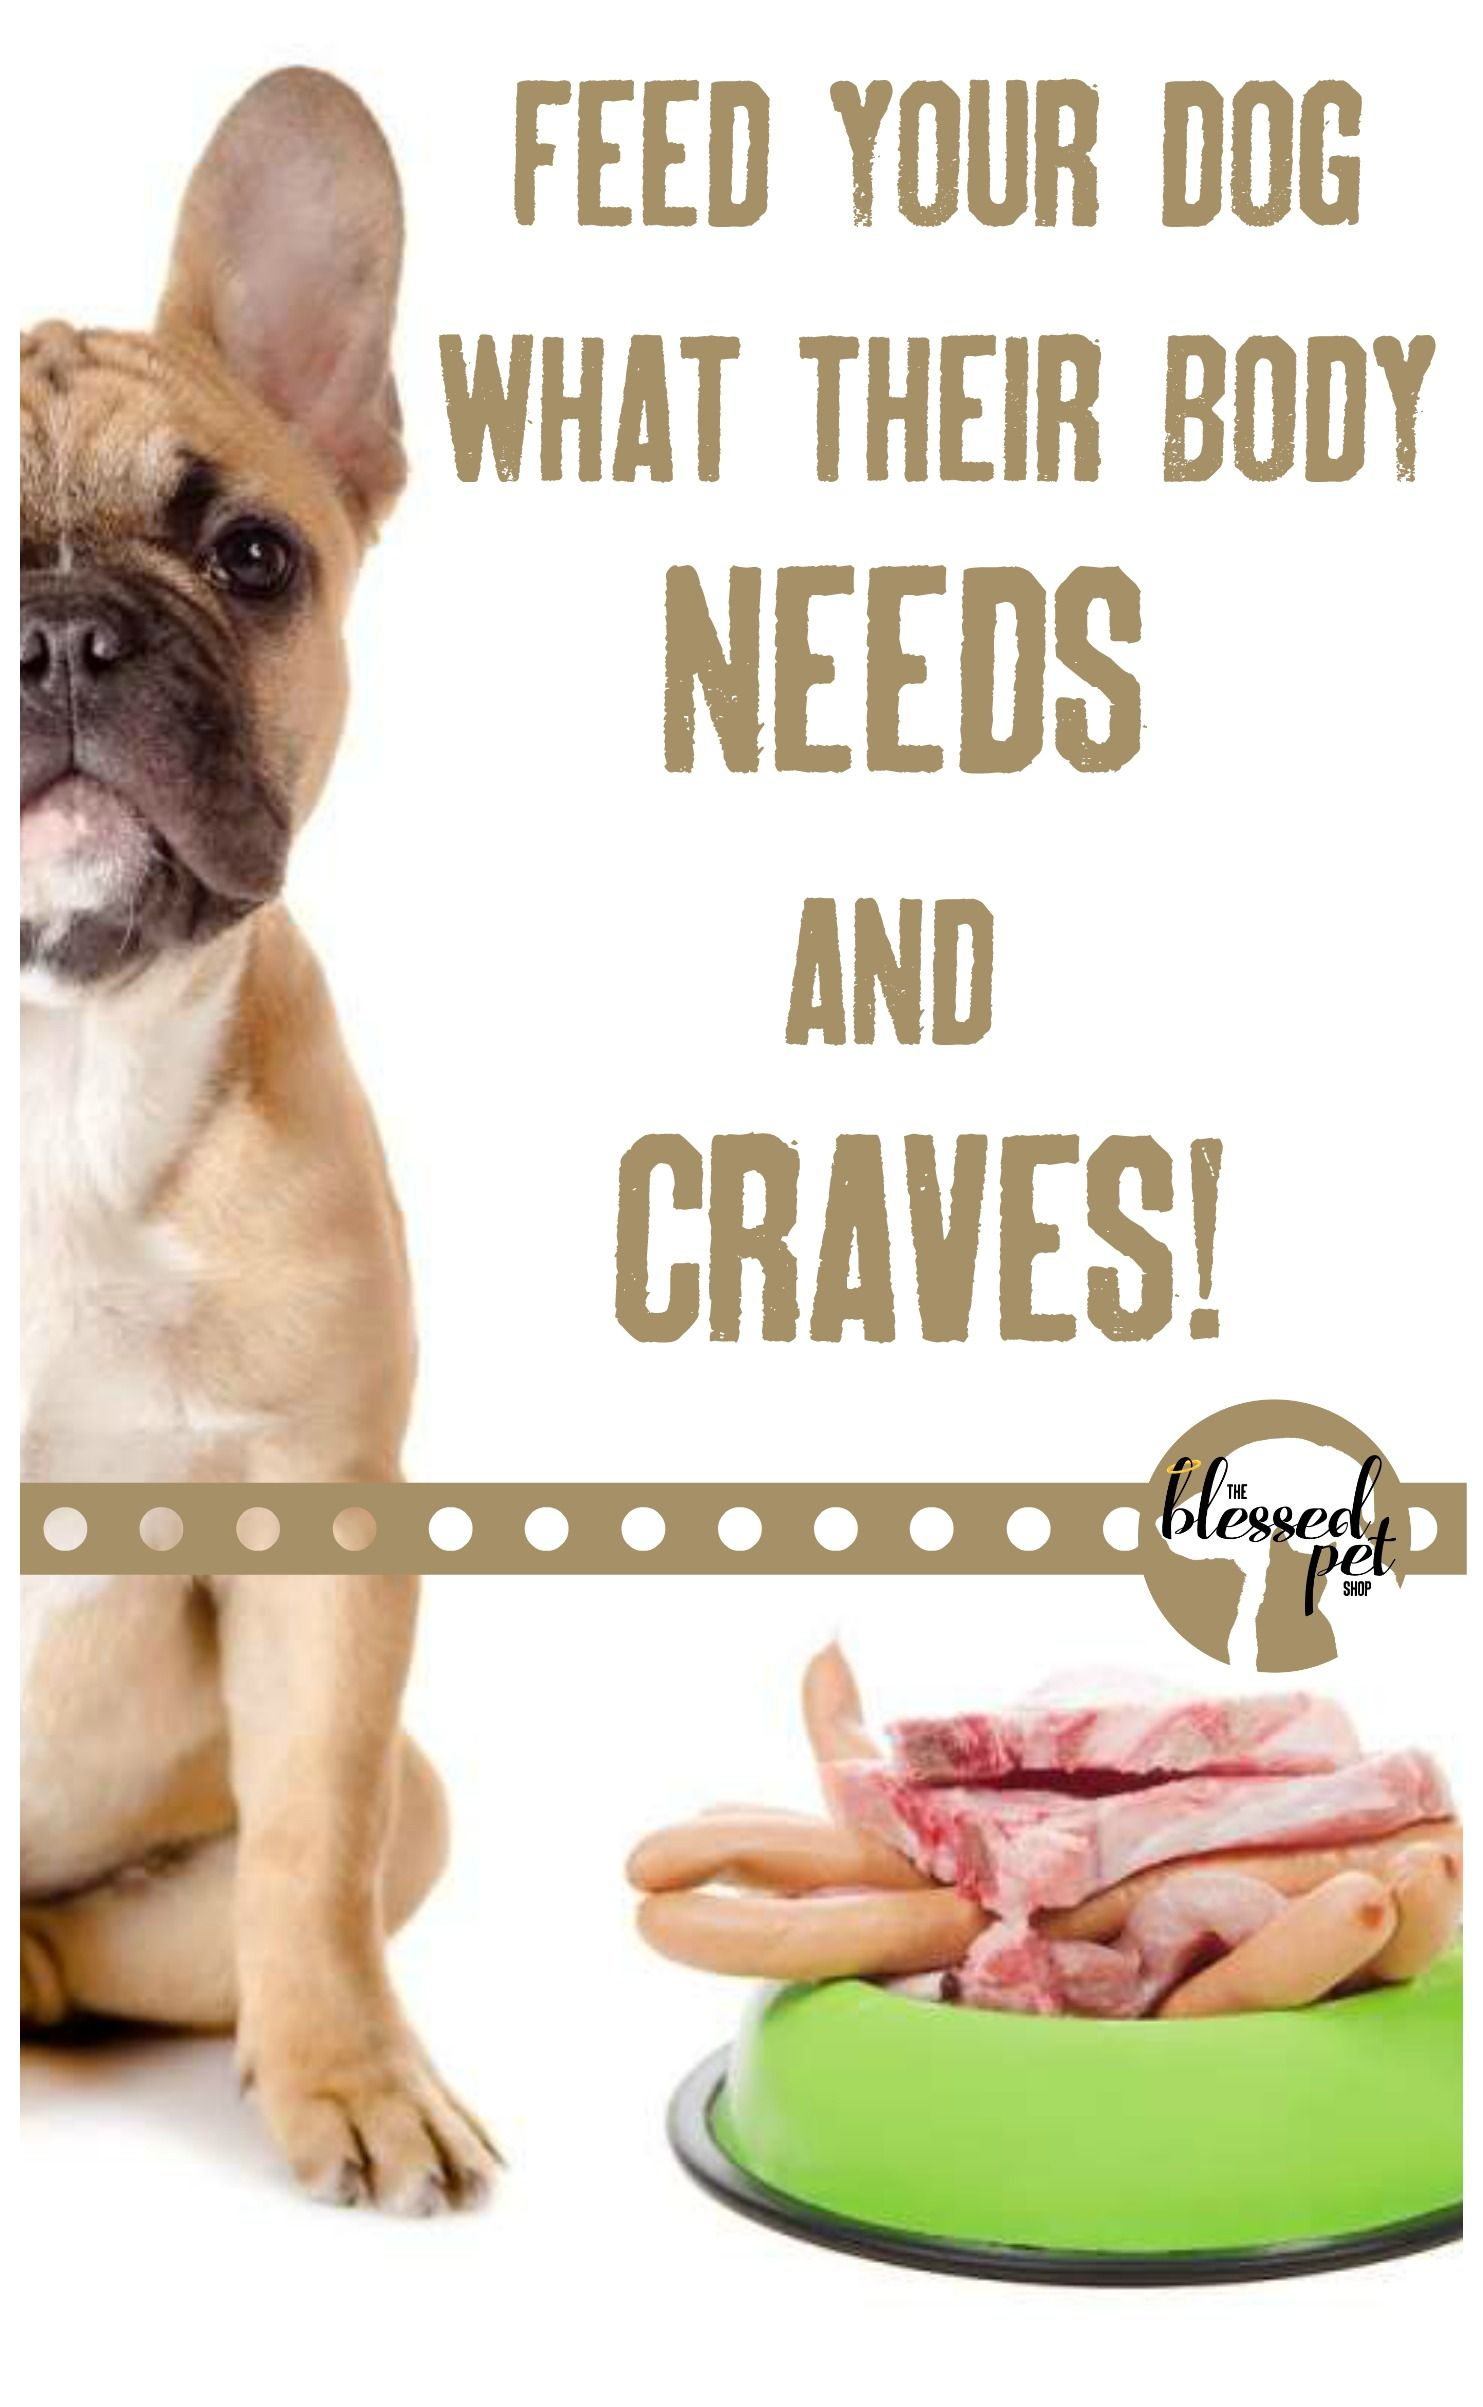 Dogs & Cats are CARNIVORES. Feed them RAW DIETS. The